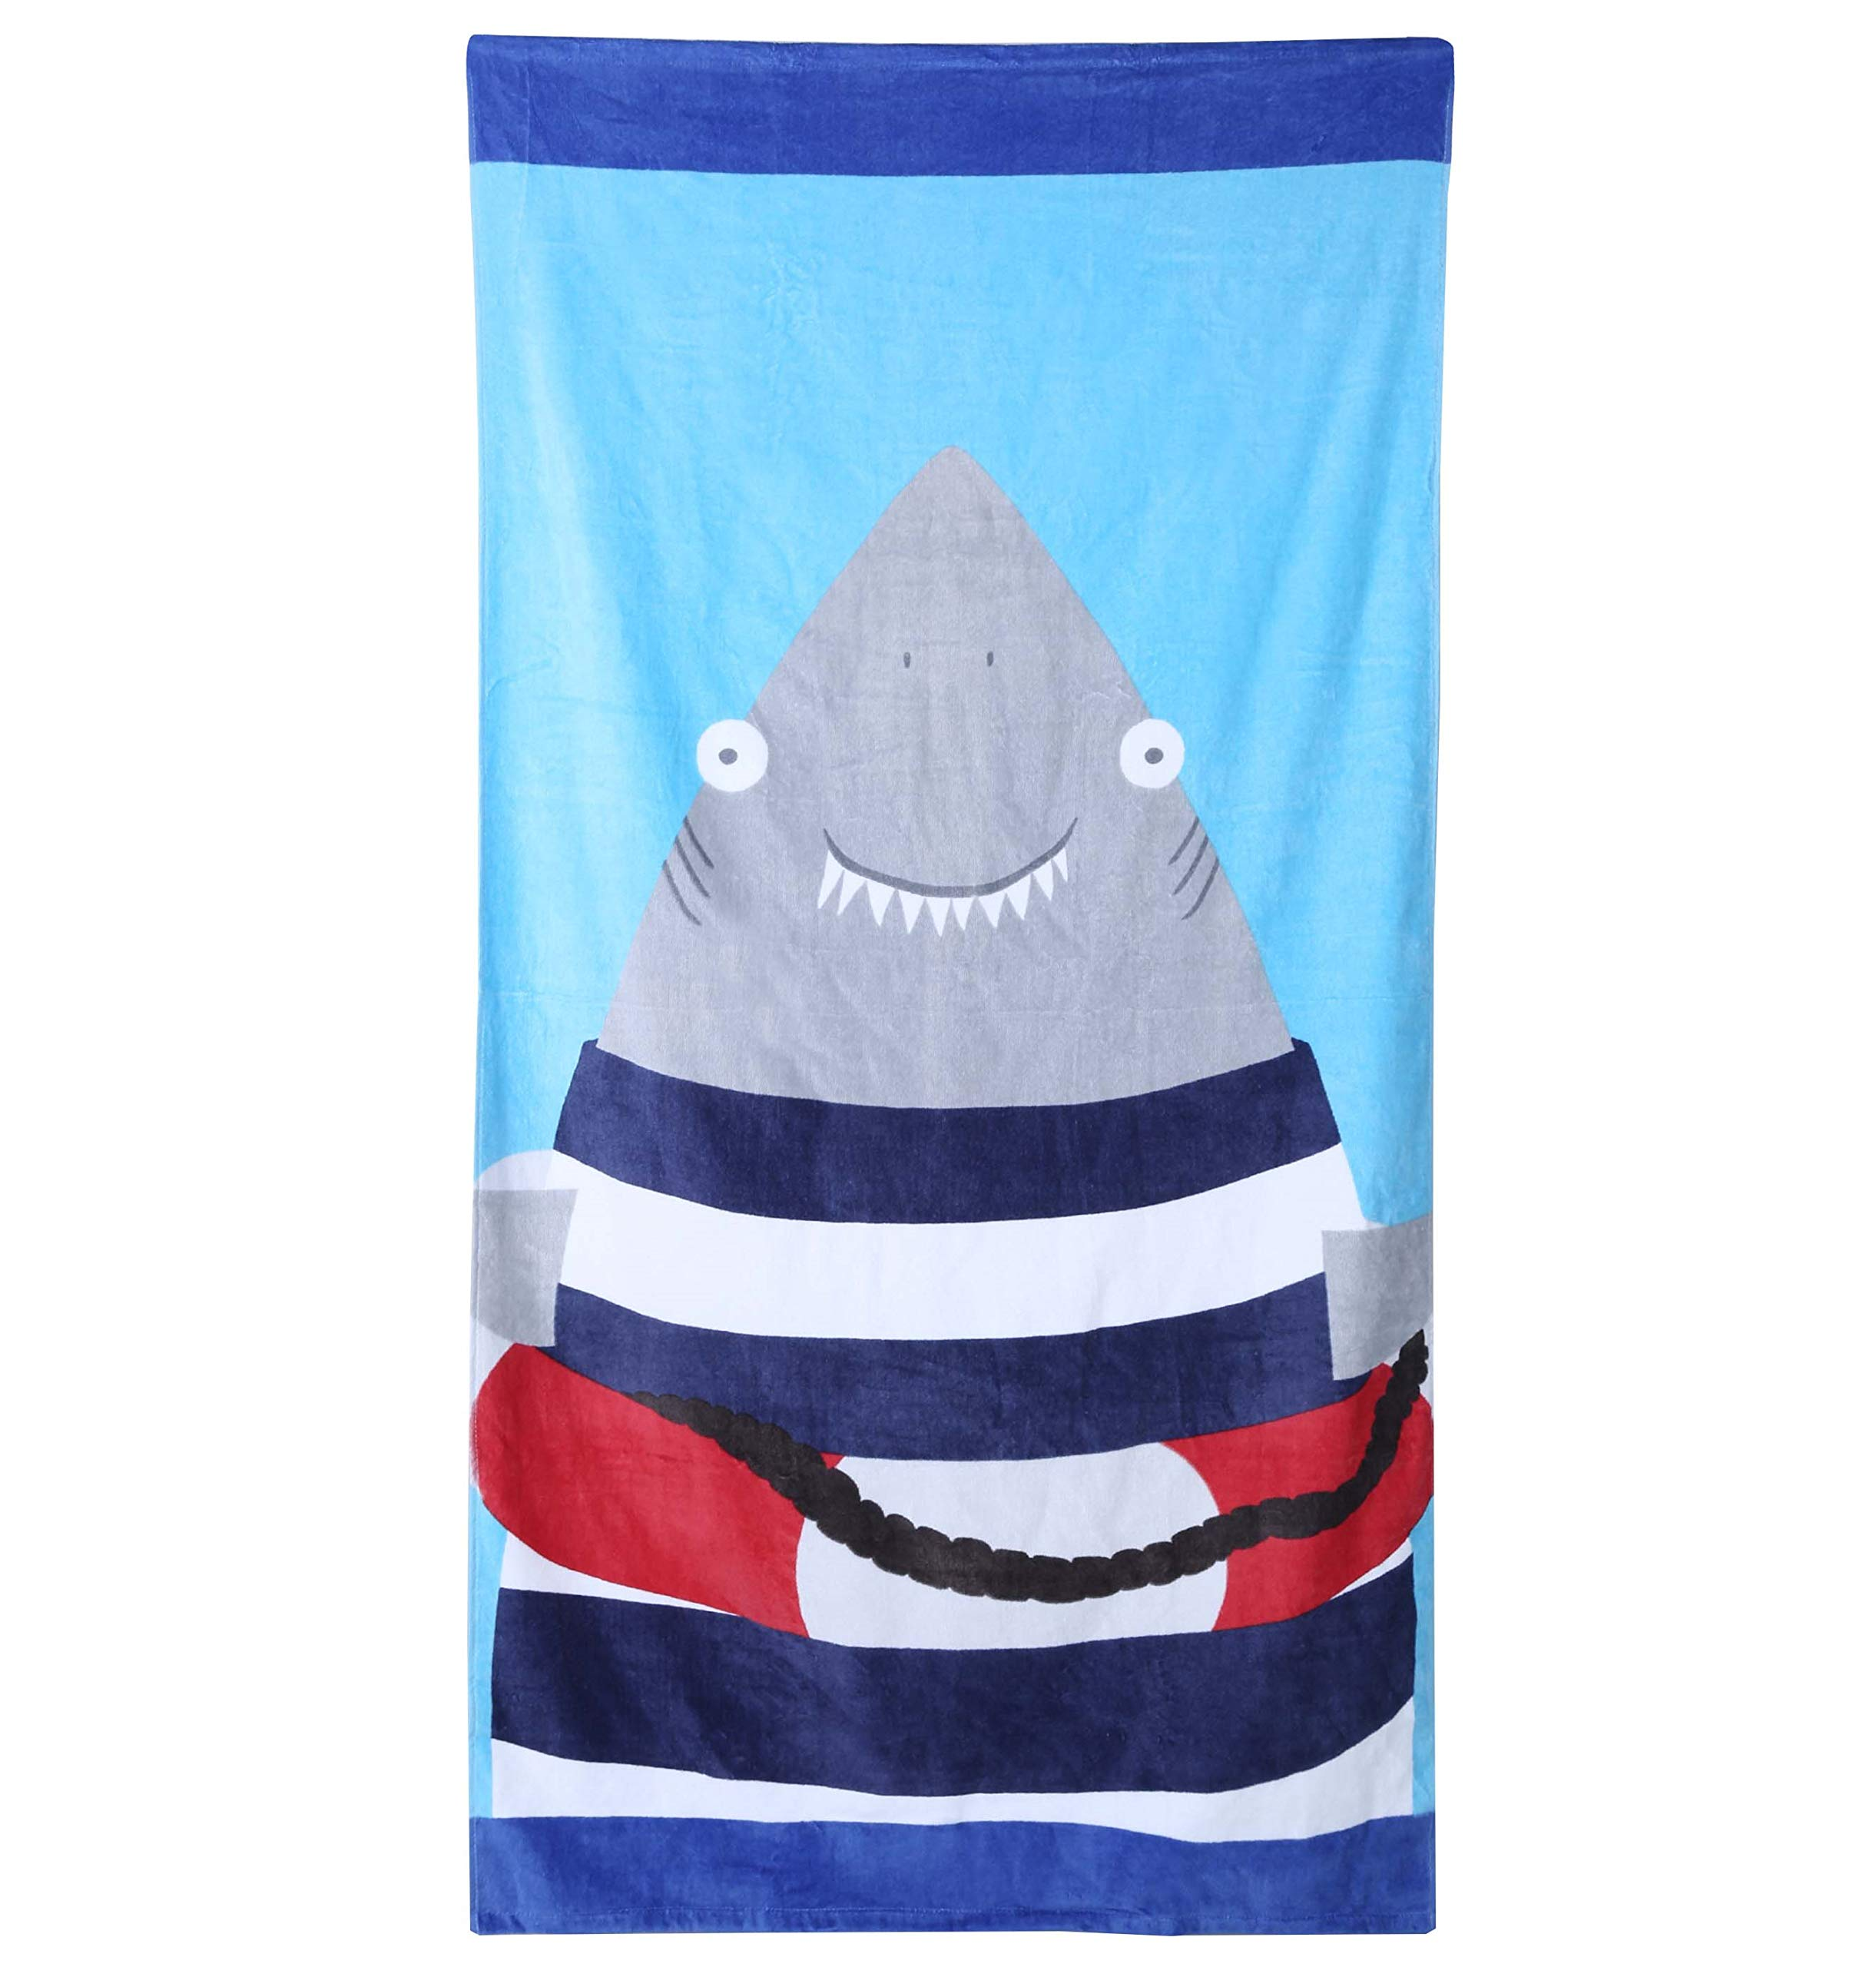 Wowelife Baby Bath Towels for Bath, Pool and Beach 100% Cotton 30 x 63 inch Extended Length for Both Children and Adults(Happy Jaw)